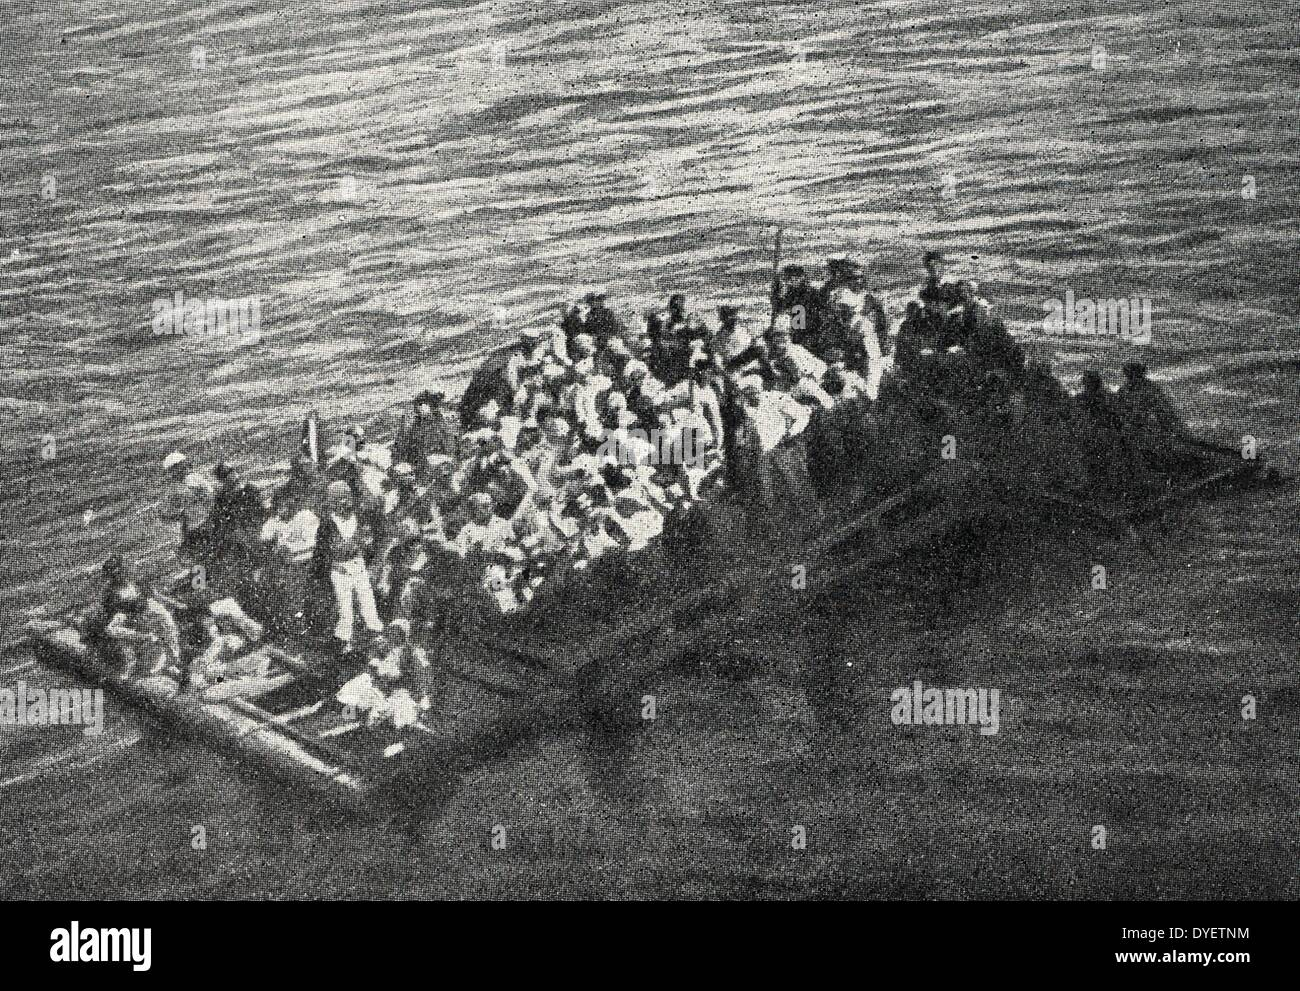 world War I, A from the wreck of the Italian auxiliary cruiser Gallia, torpedoed on October 4, 1916 in the morning. The raft is - Stock Image